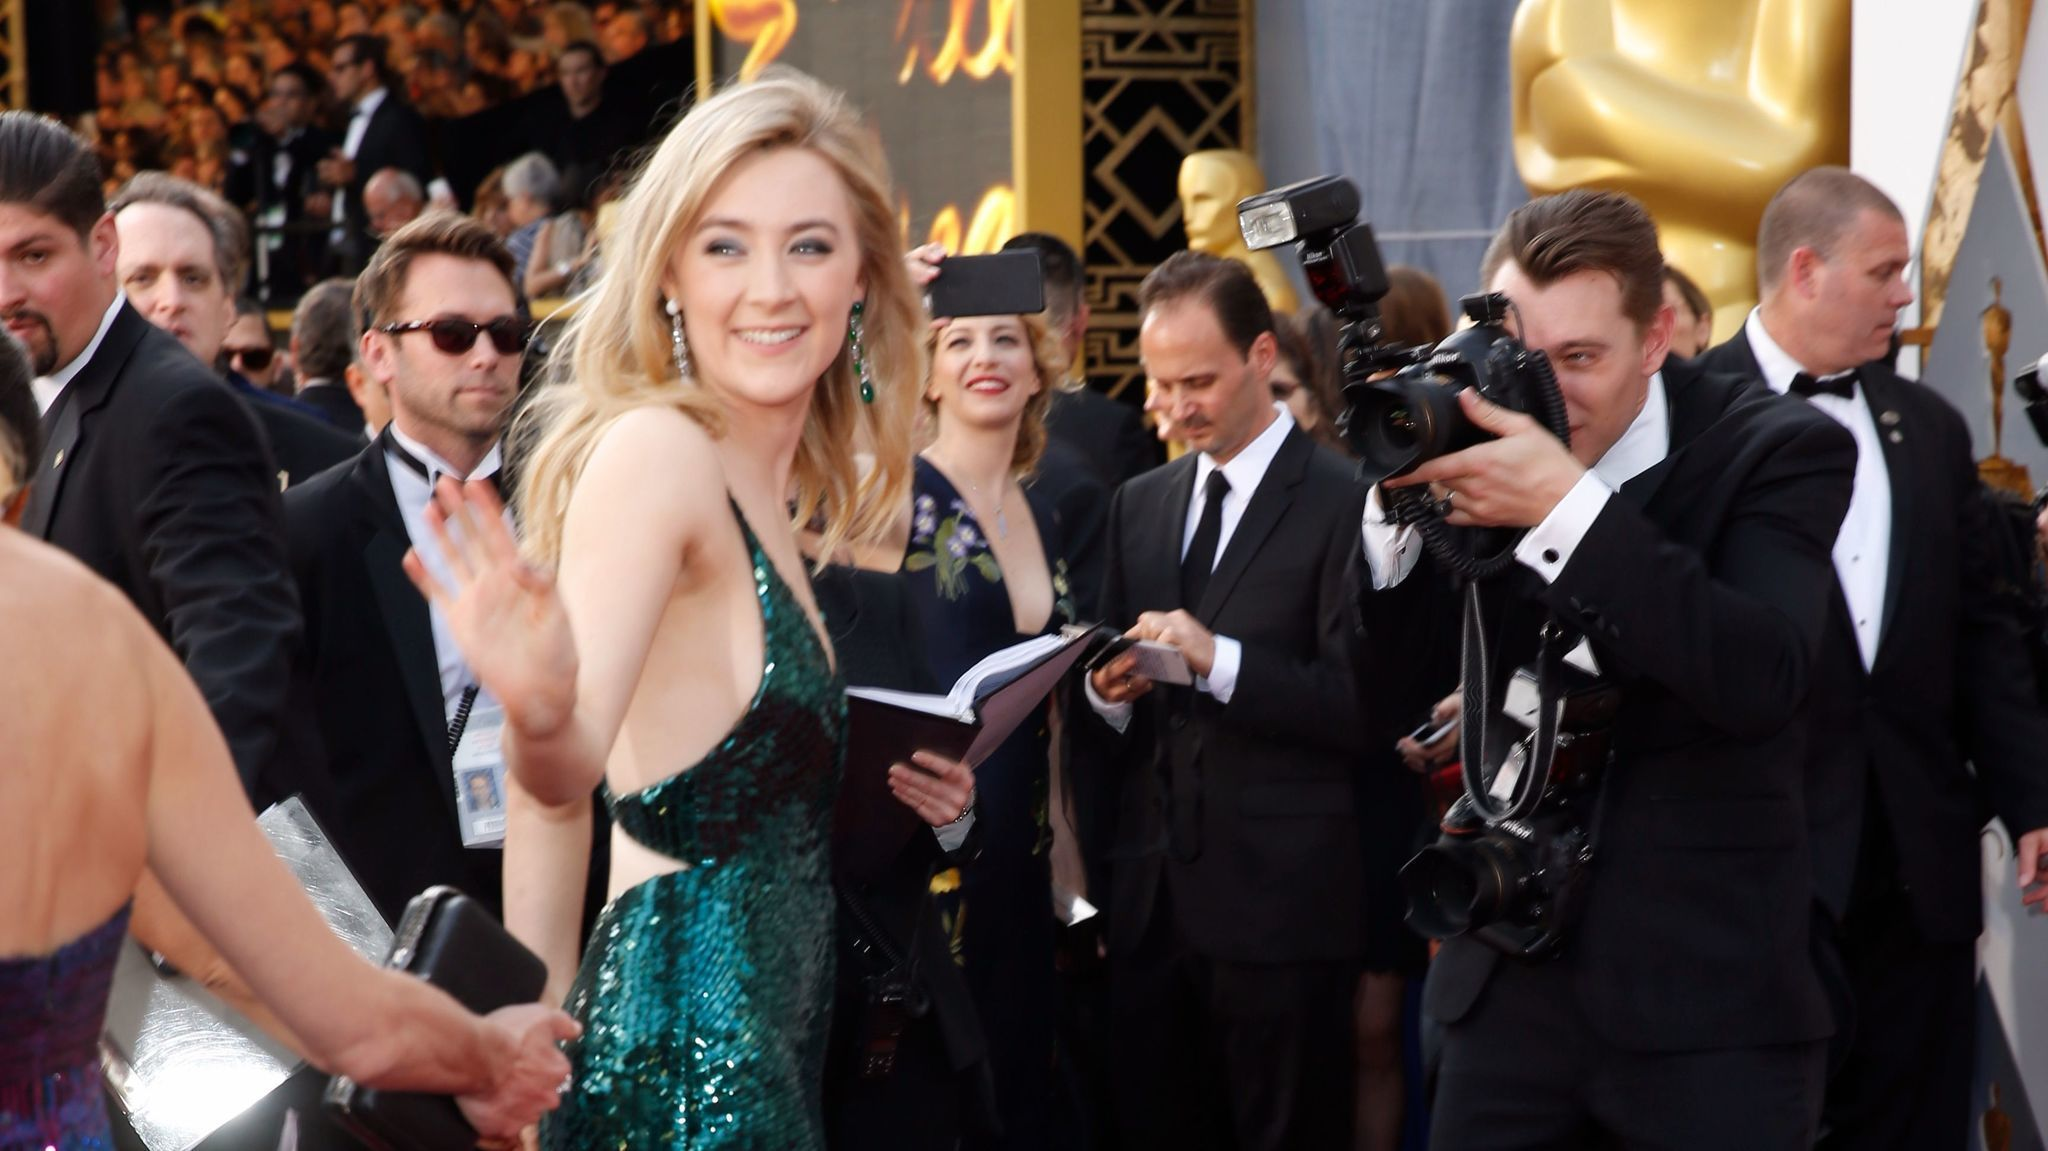 Saoirse Ronan at the Oscars in 2016, wearing a green dress for Ireland.